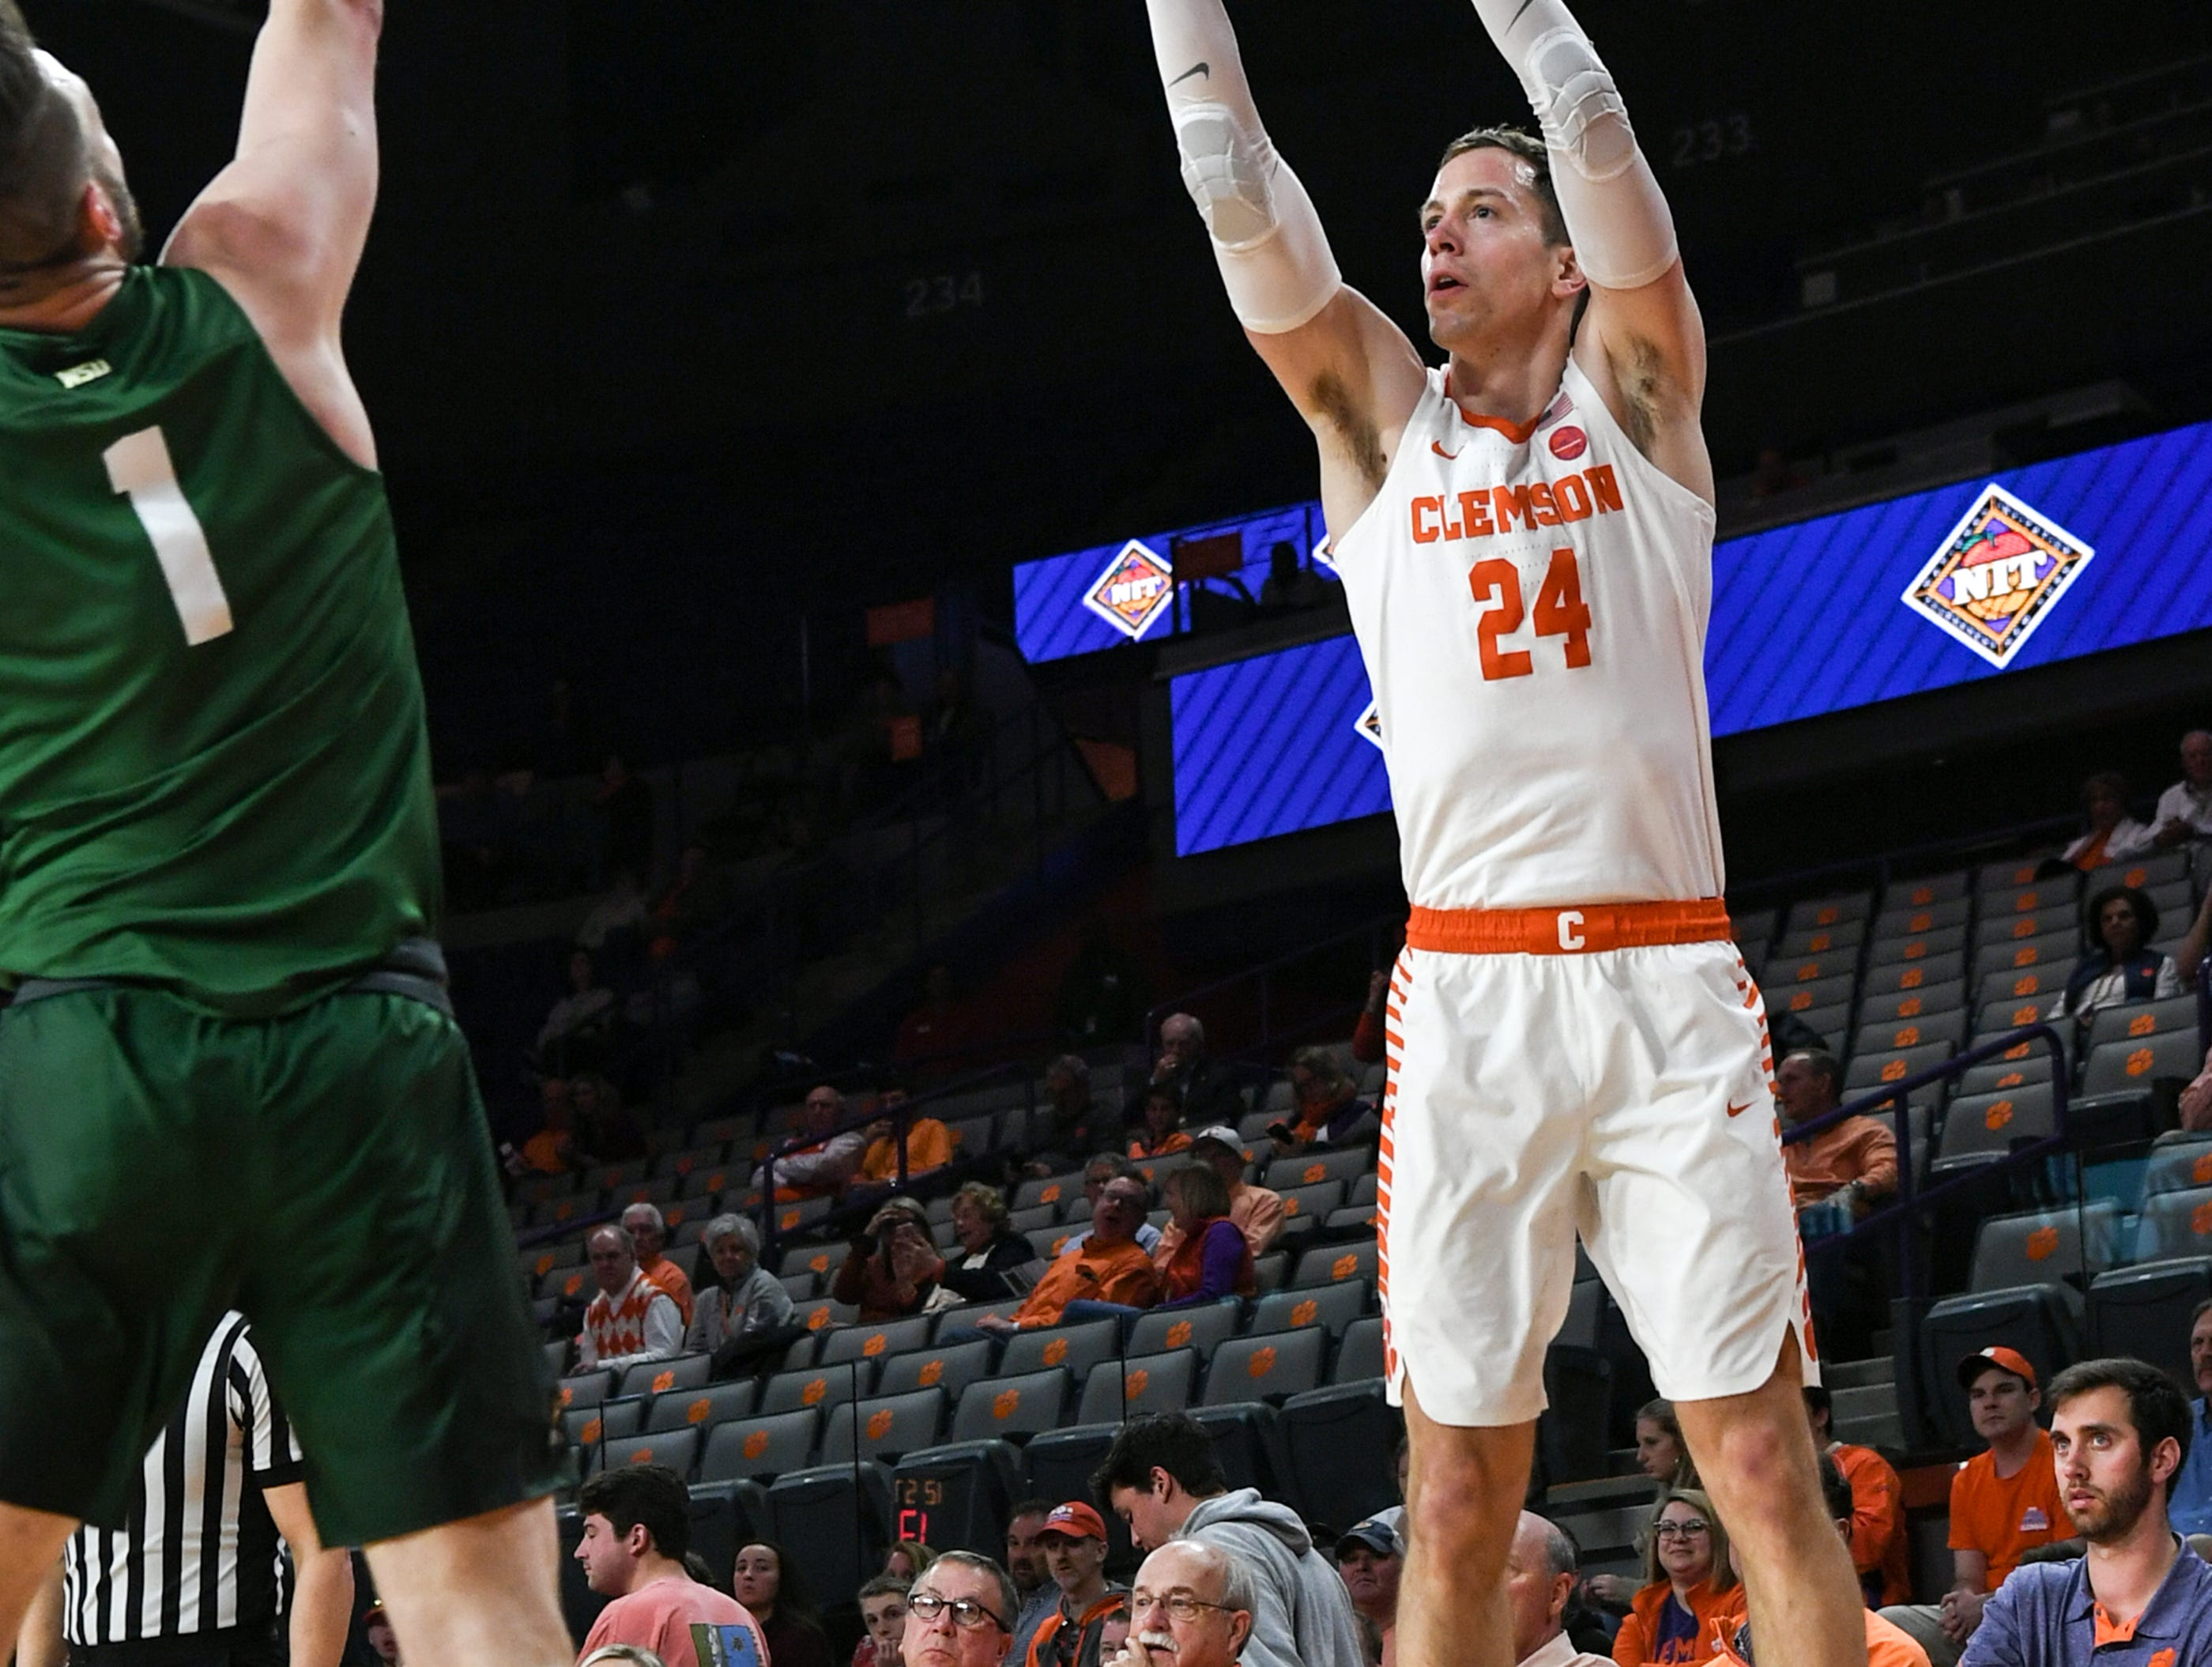 Clemson forward David Skara (24) shoots a three-pointer near Wright State forward Bill Wampler(1) during the first half of the NIT at Littlejohn Coliseum in Clemson Tuesday, March 19, 2019.